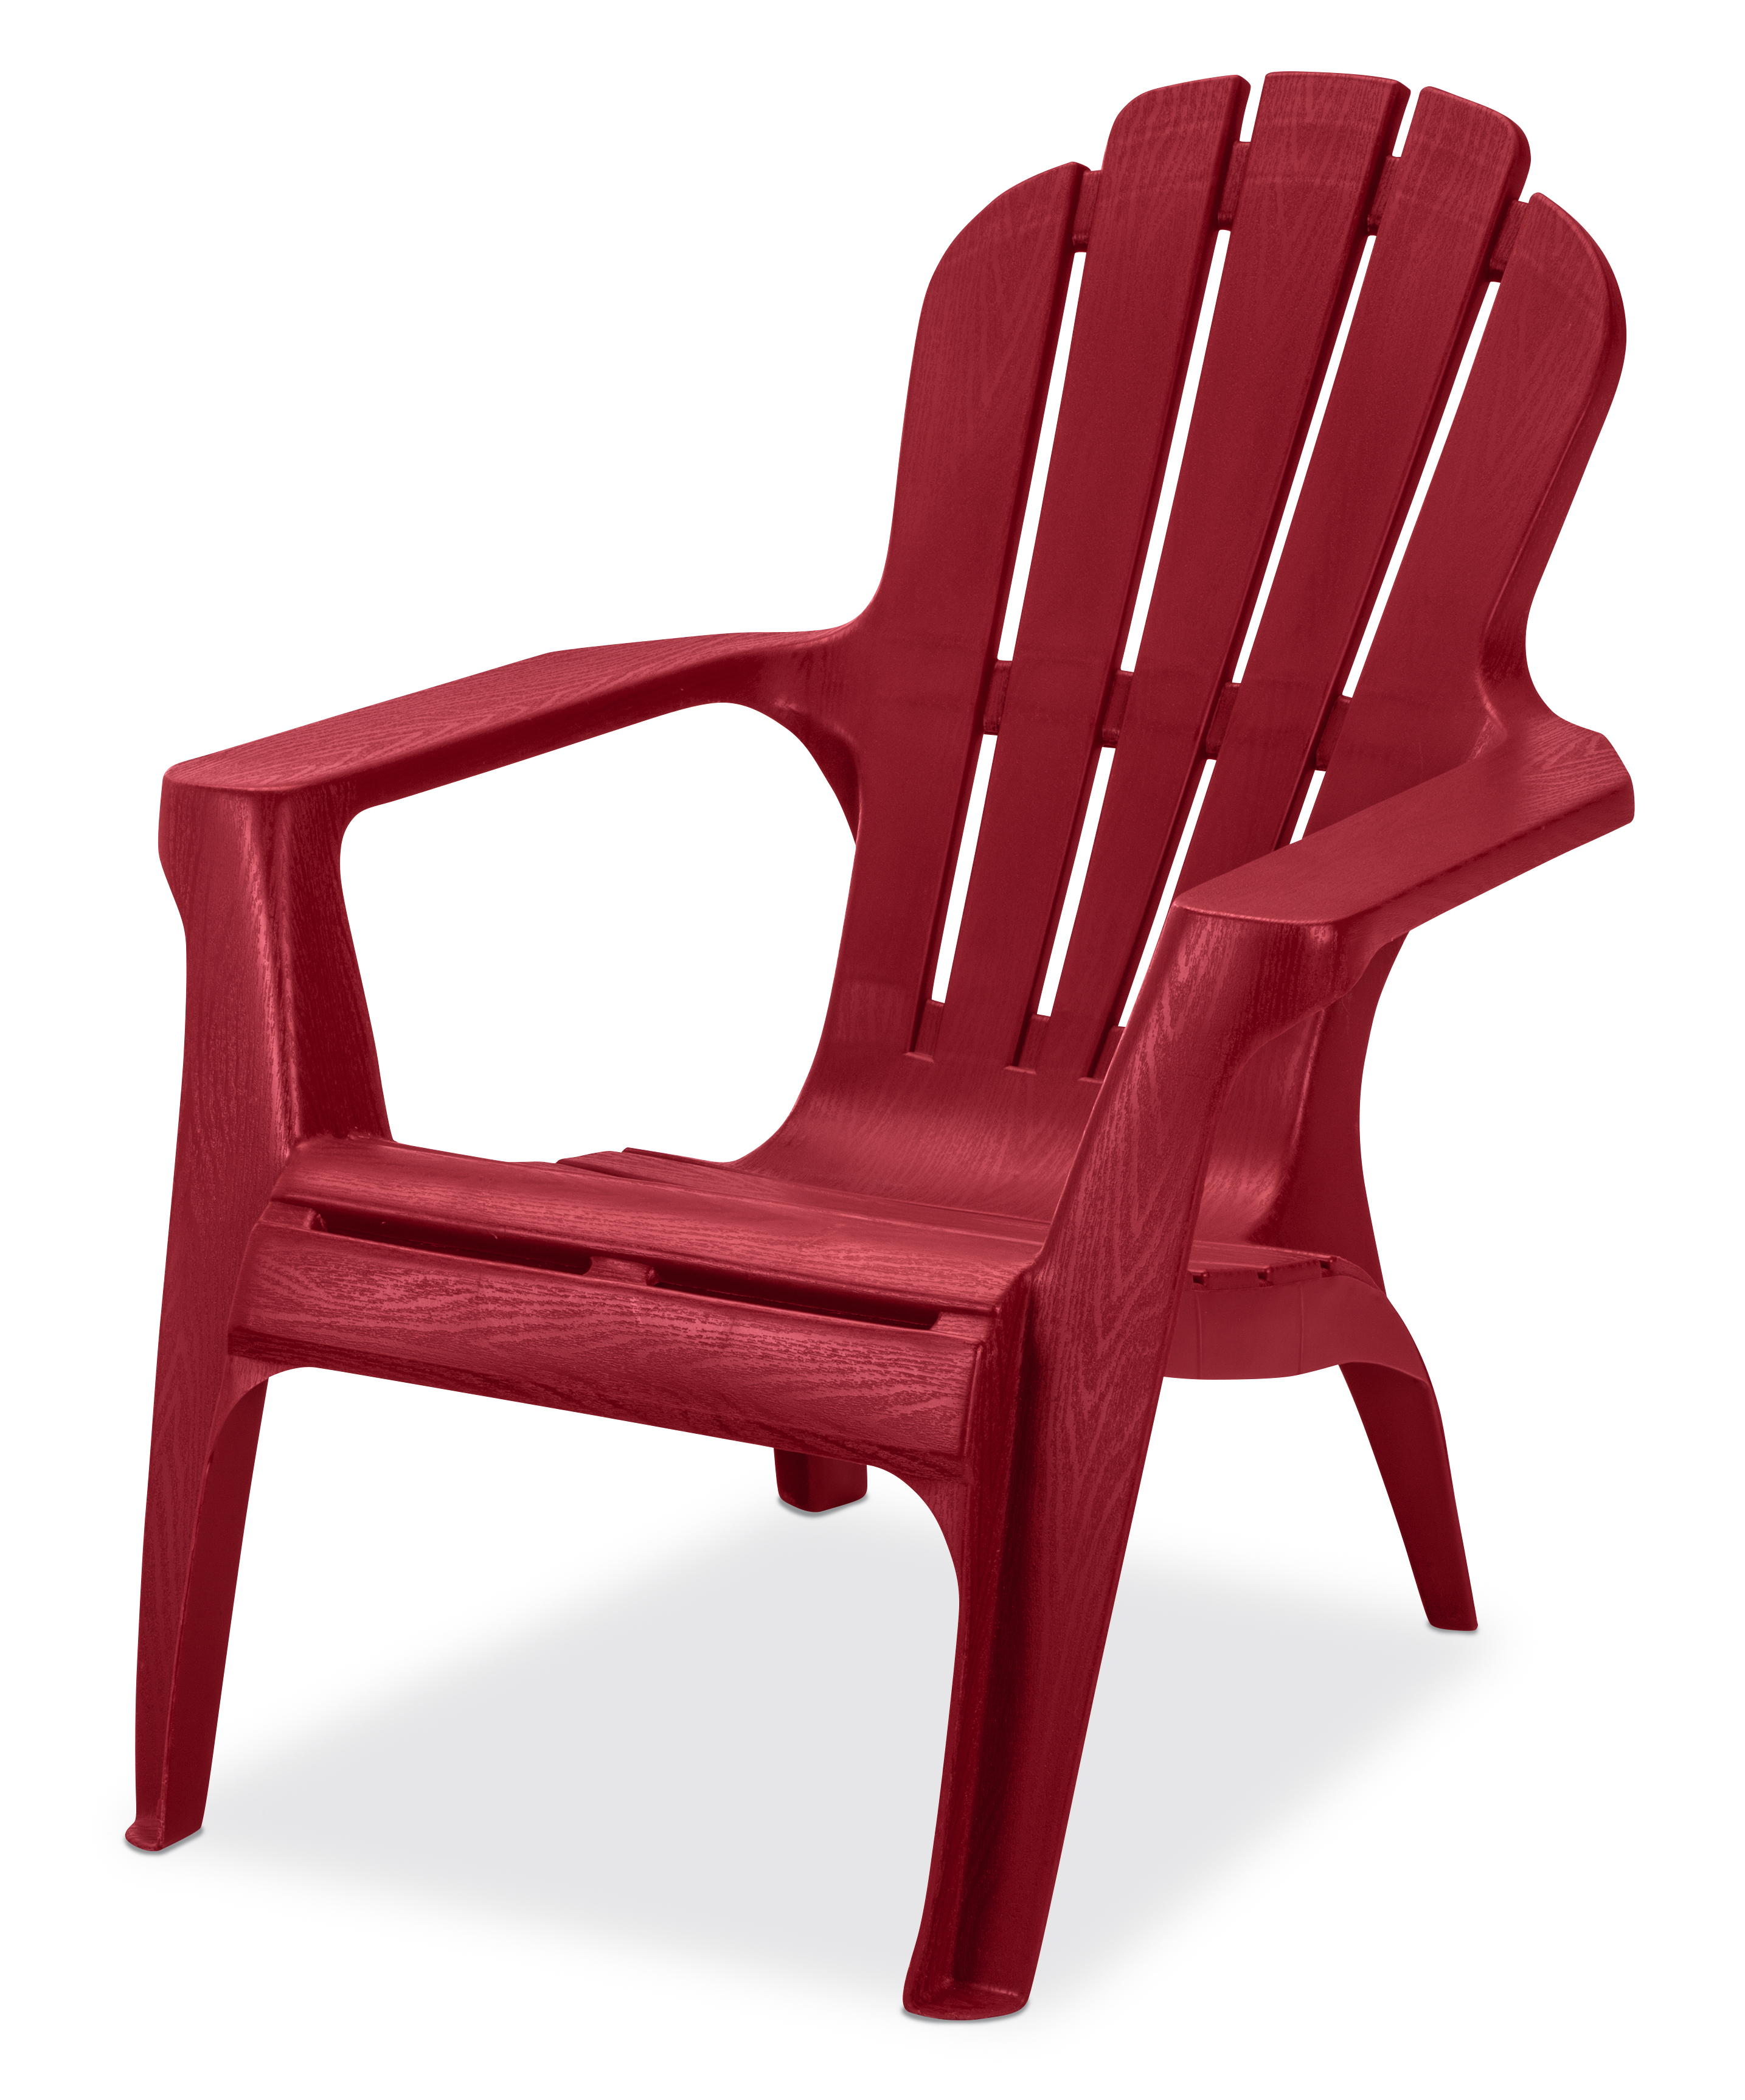 Superieur Product Image US Leisure Resin Adirondack Chair   Plastic Patio Furniture,  Red